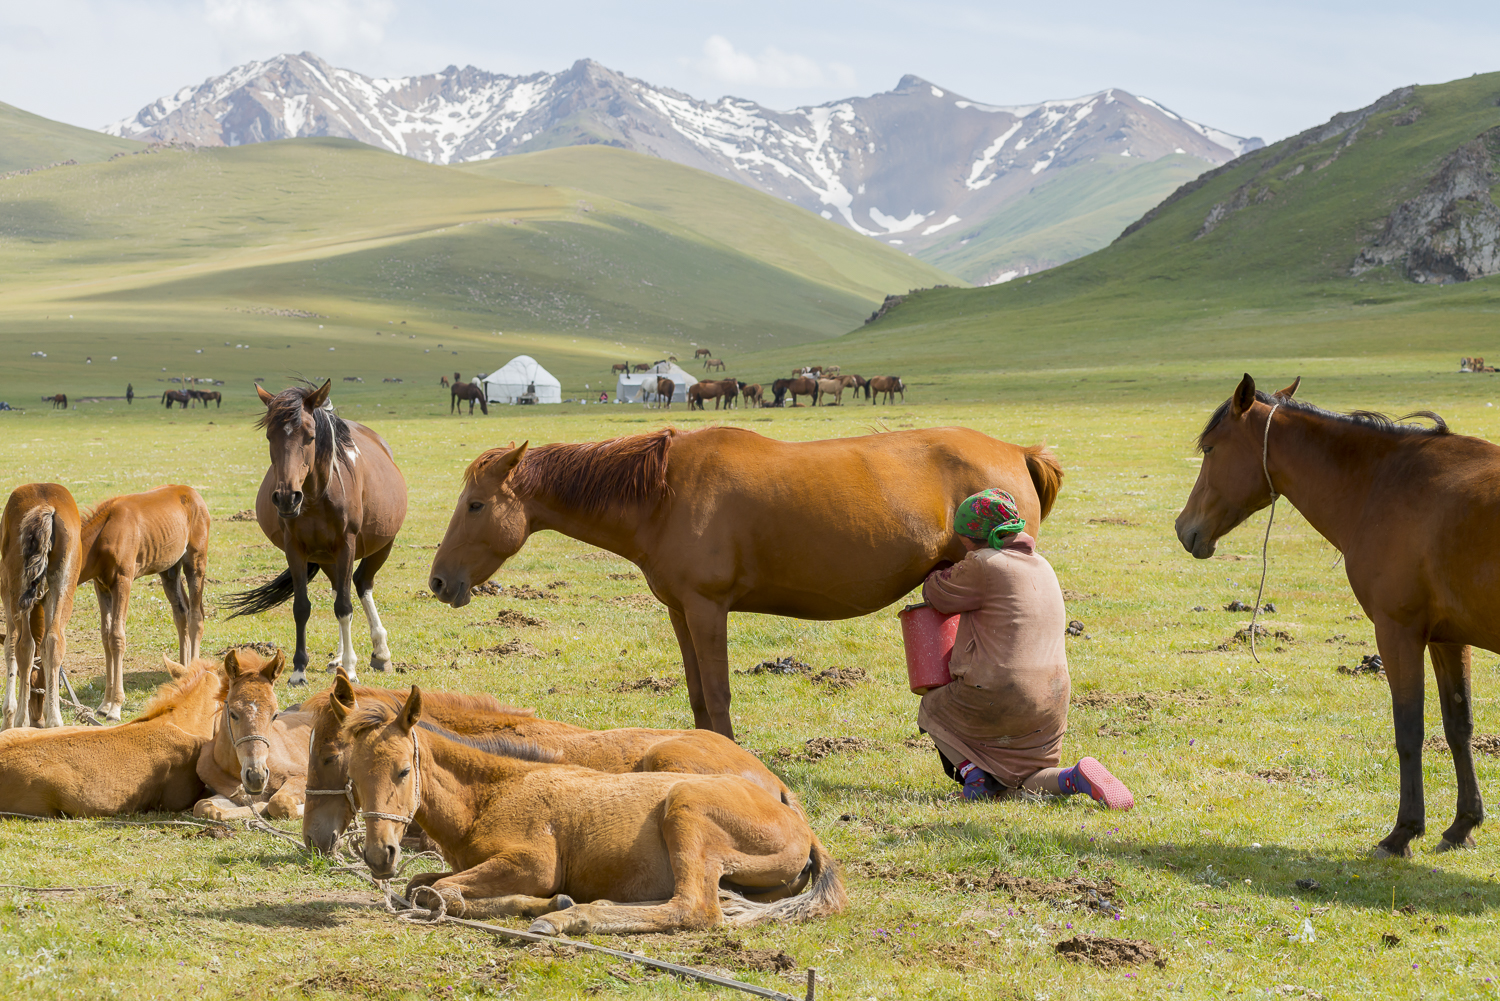 jo-kearney-photography-video-kyrgyzstan-nomads-milking.jpg